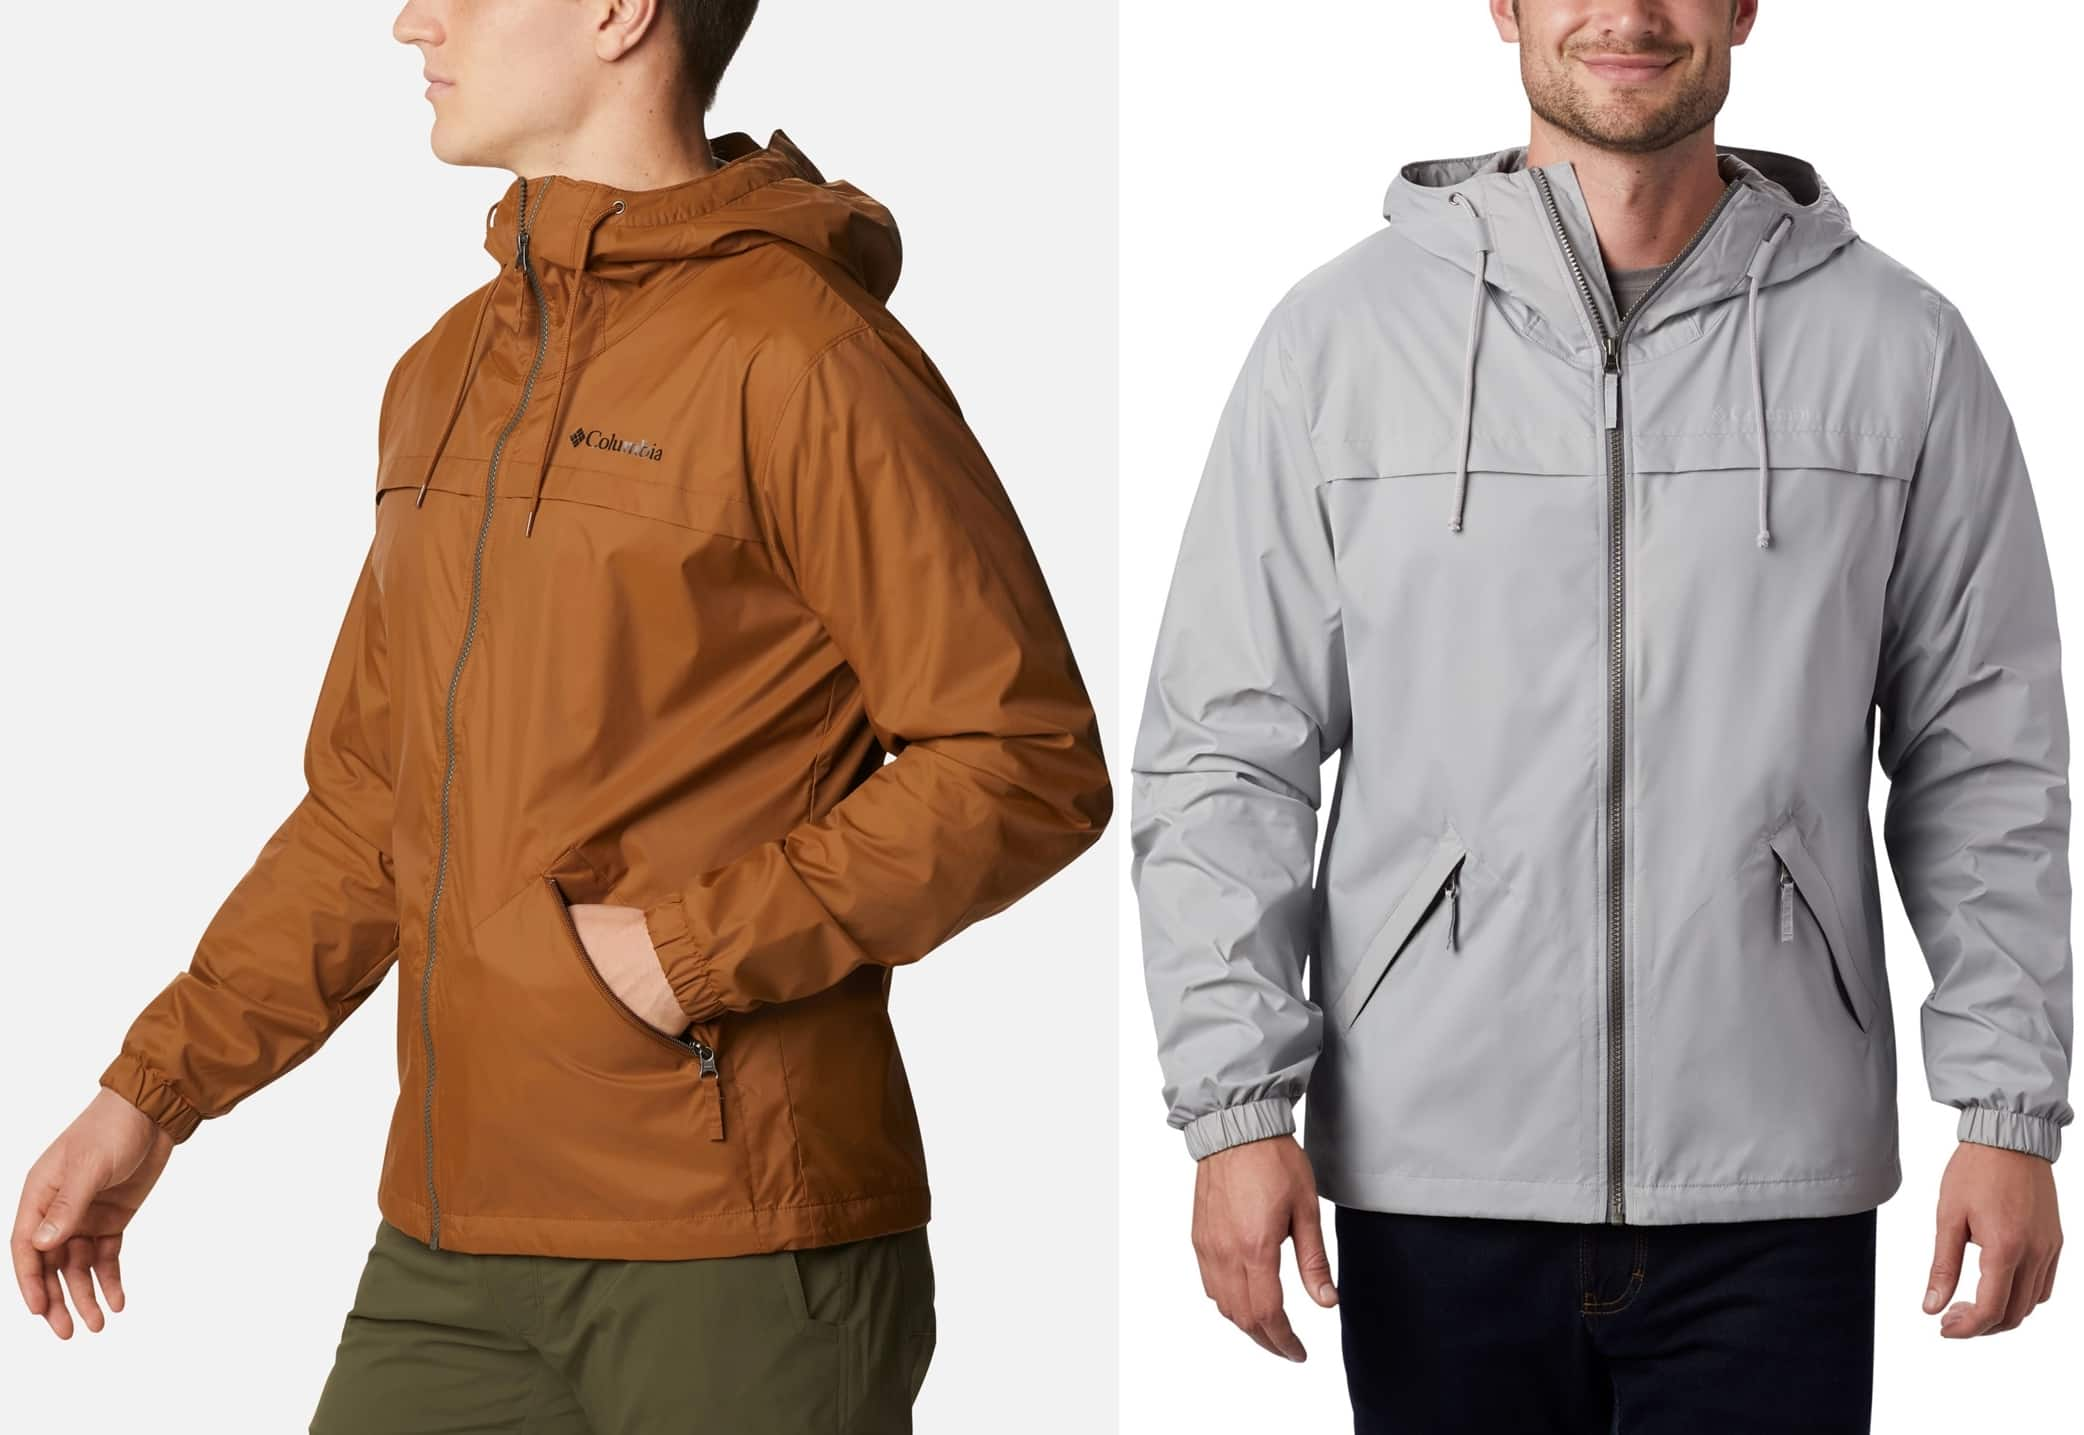 Perfect for drippy weather, this rain jacket helps protect you from the elements on the trail, around the campsite, or out on the patio